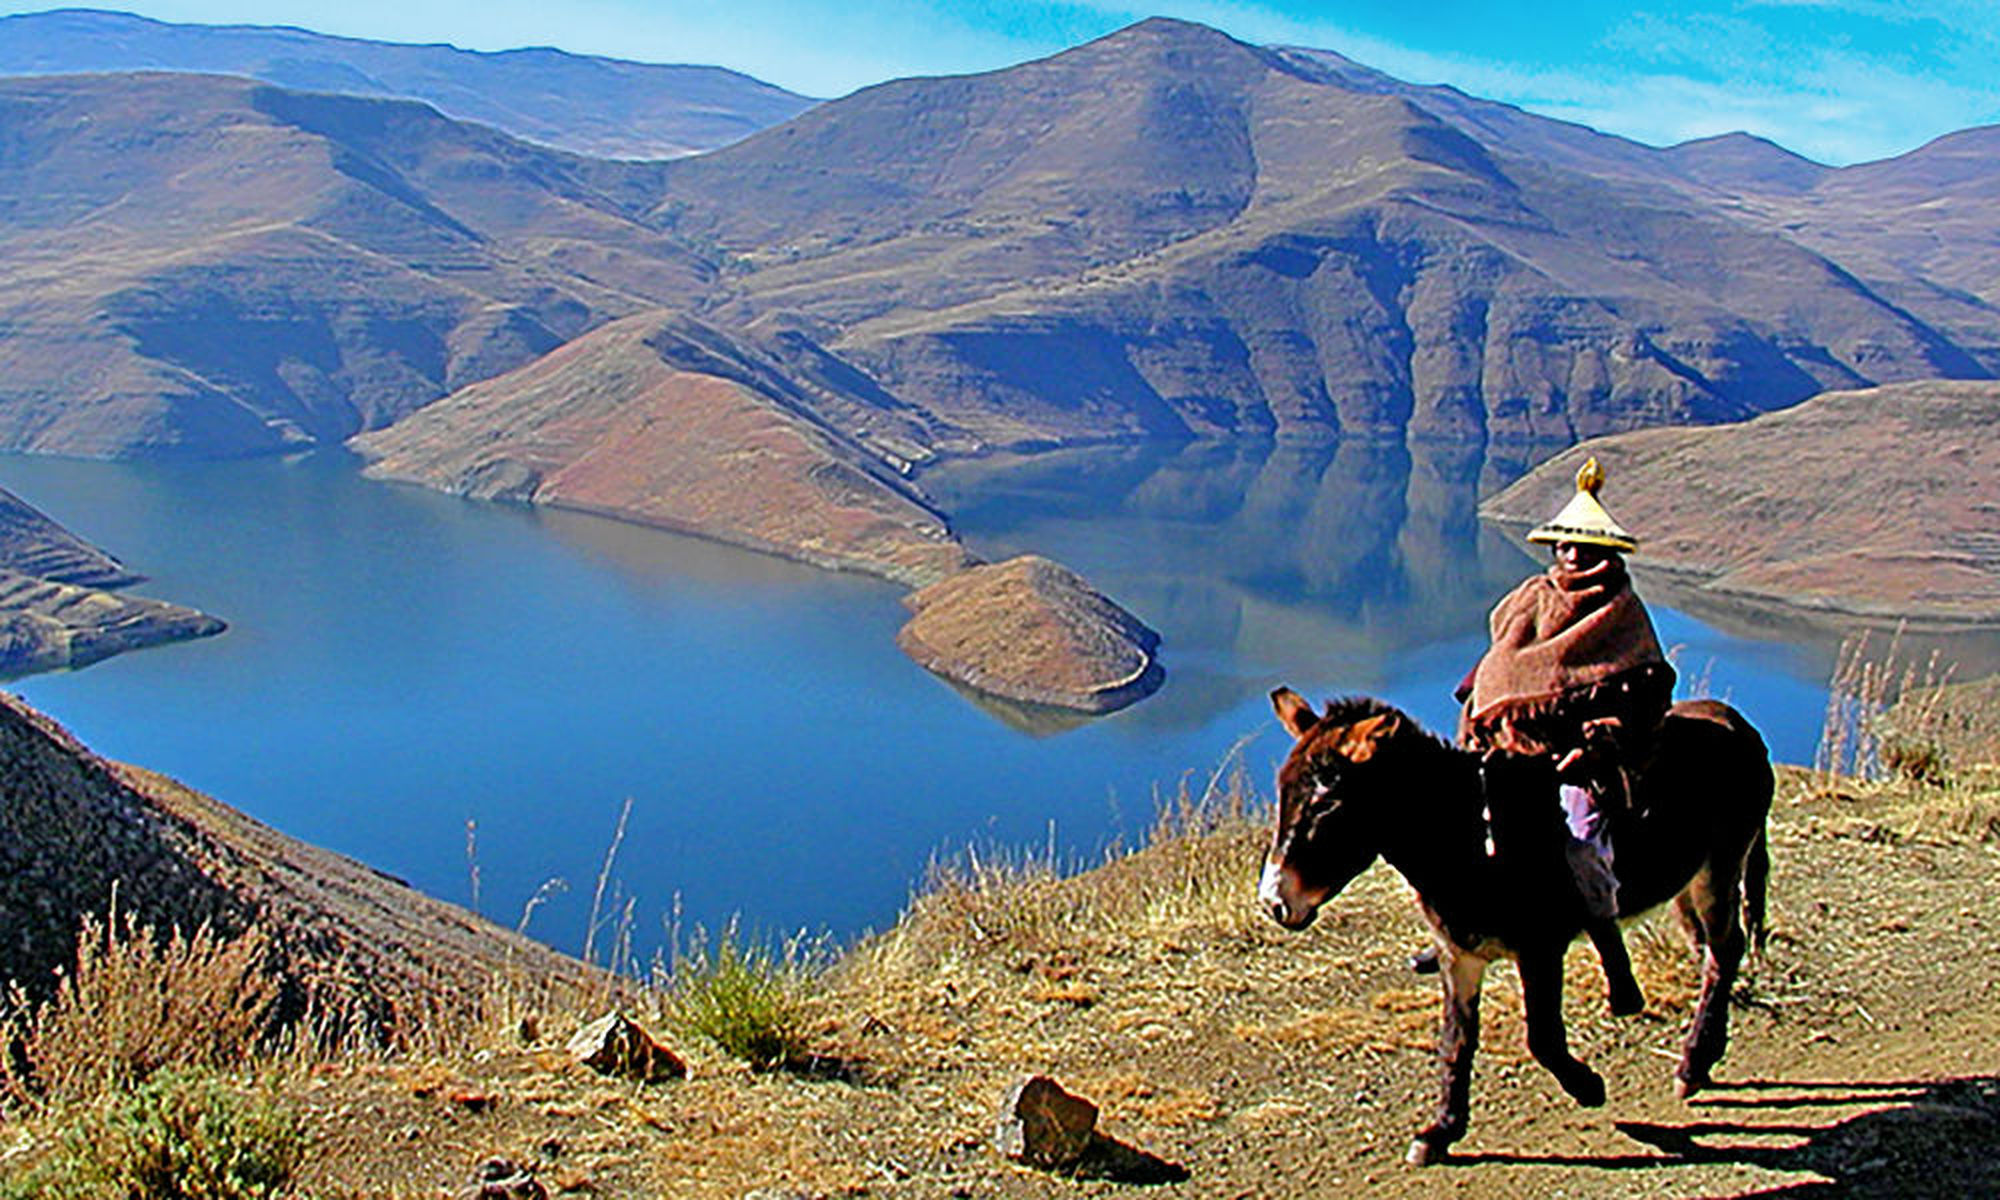 Lesotho images